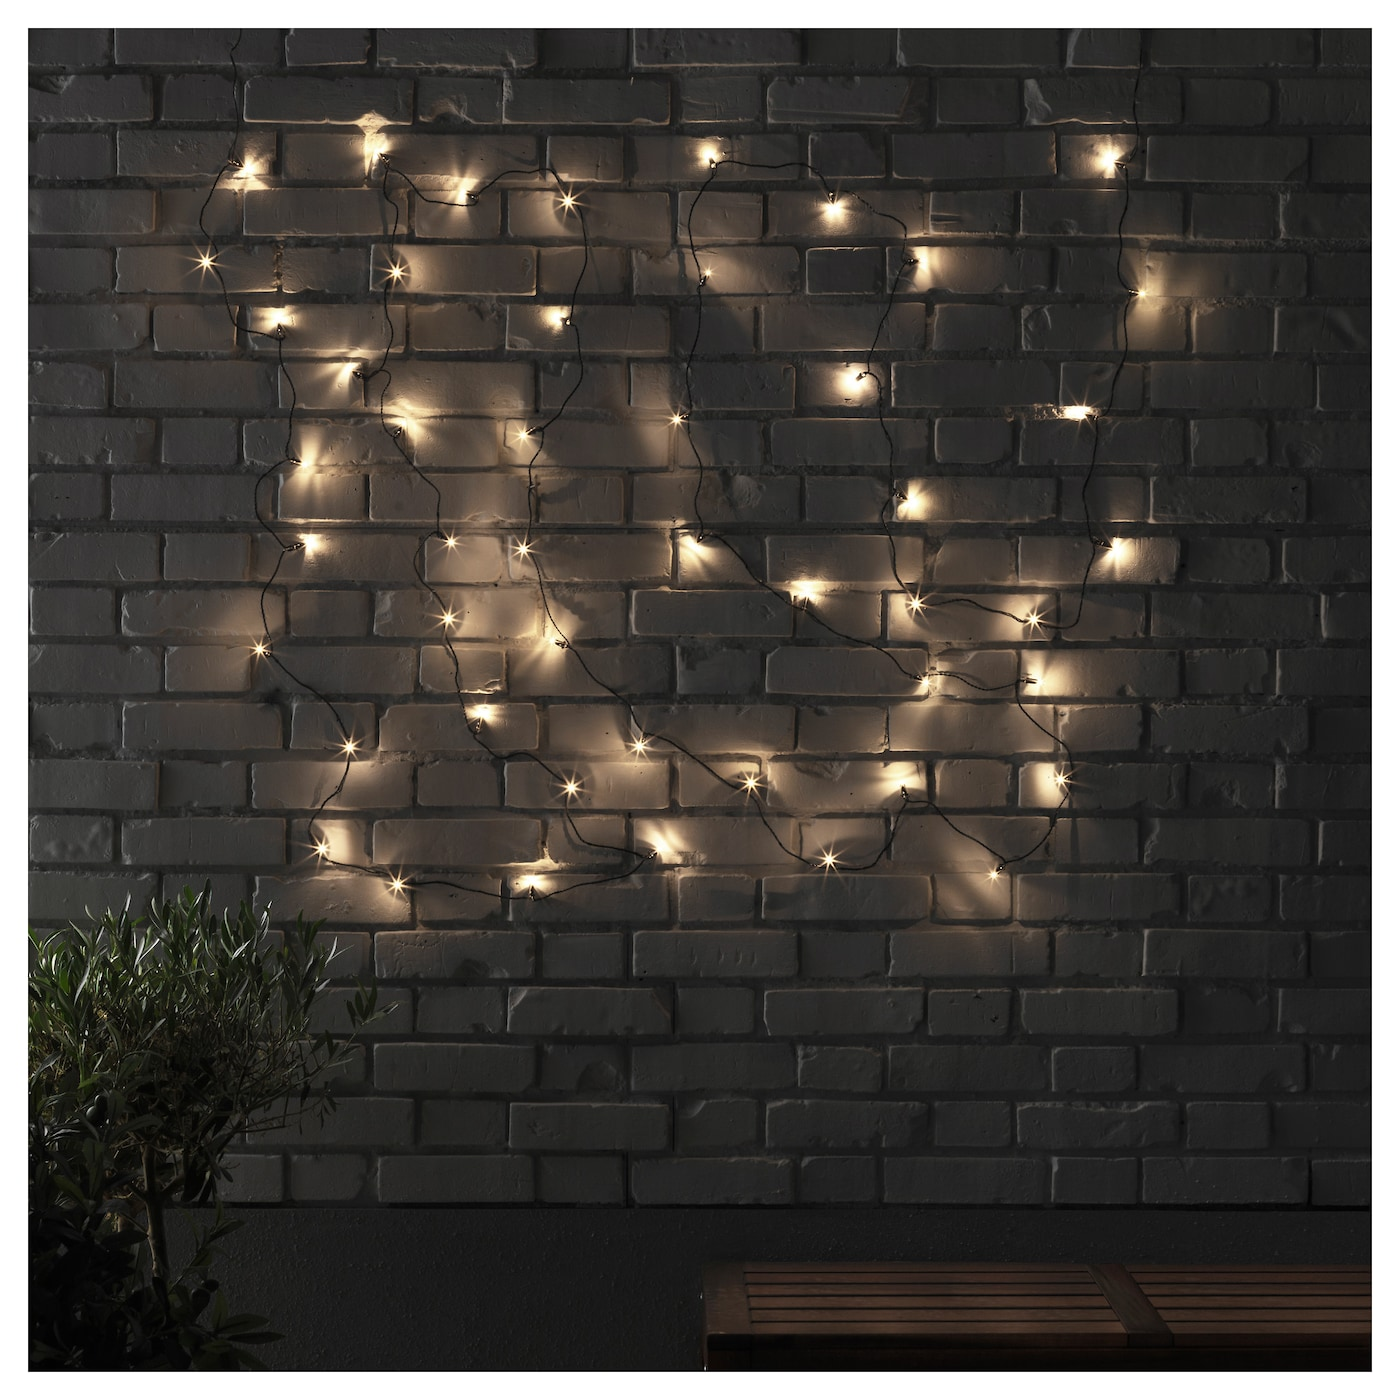 IKEA SKRUV LED lighting chain with 48 lights